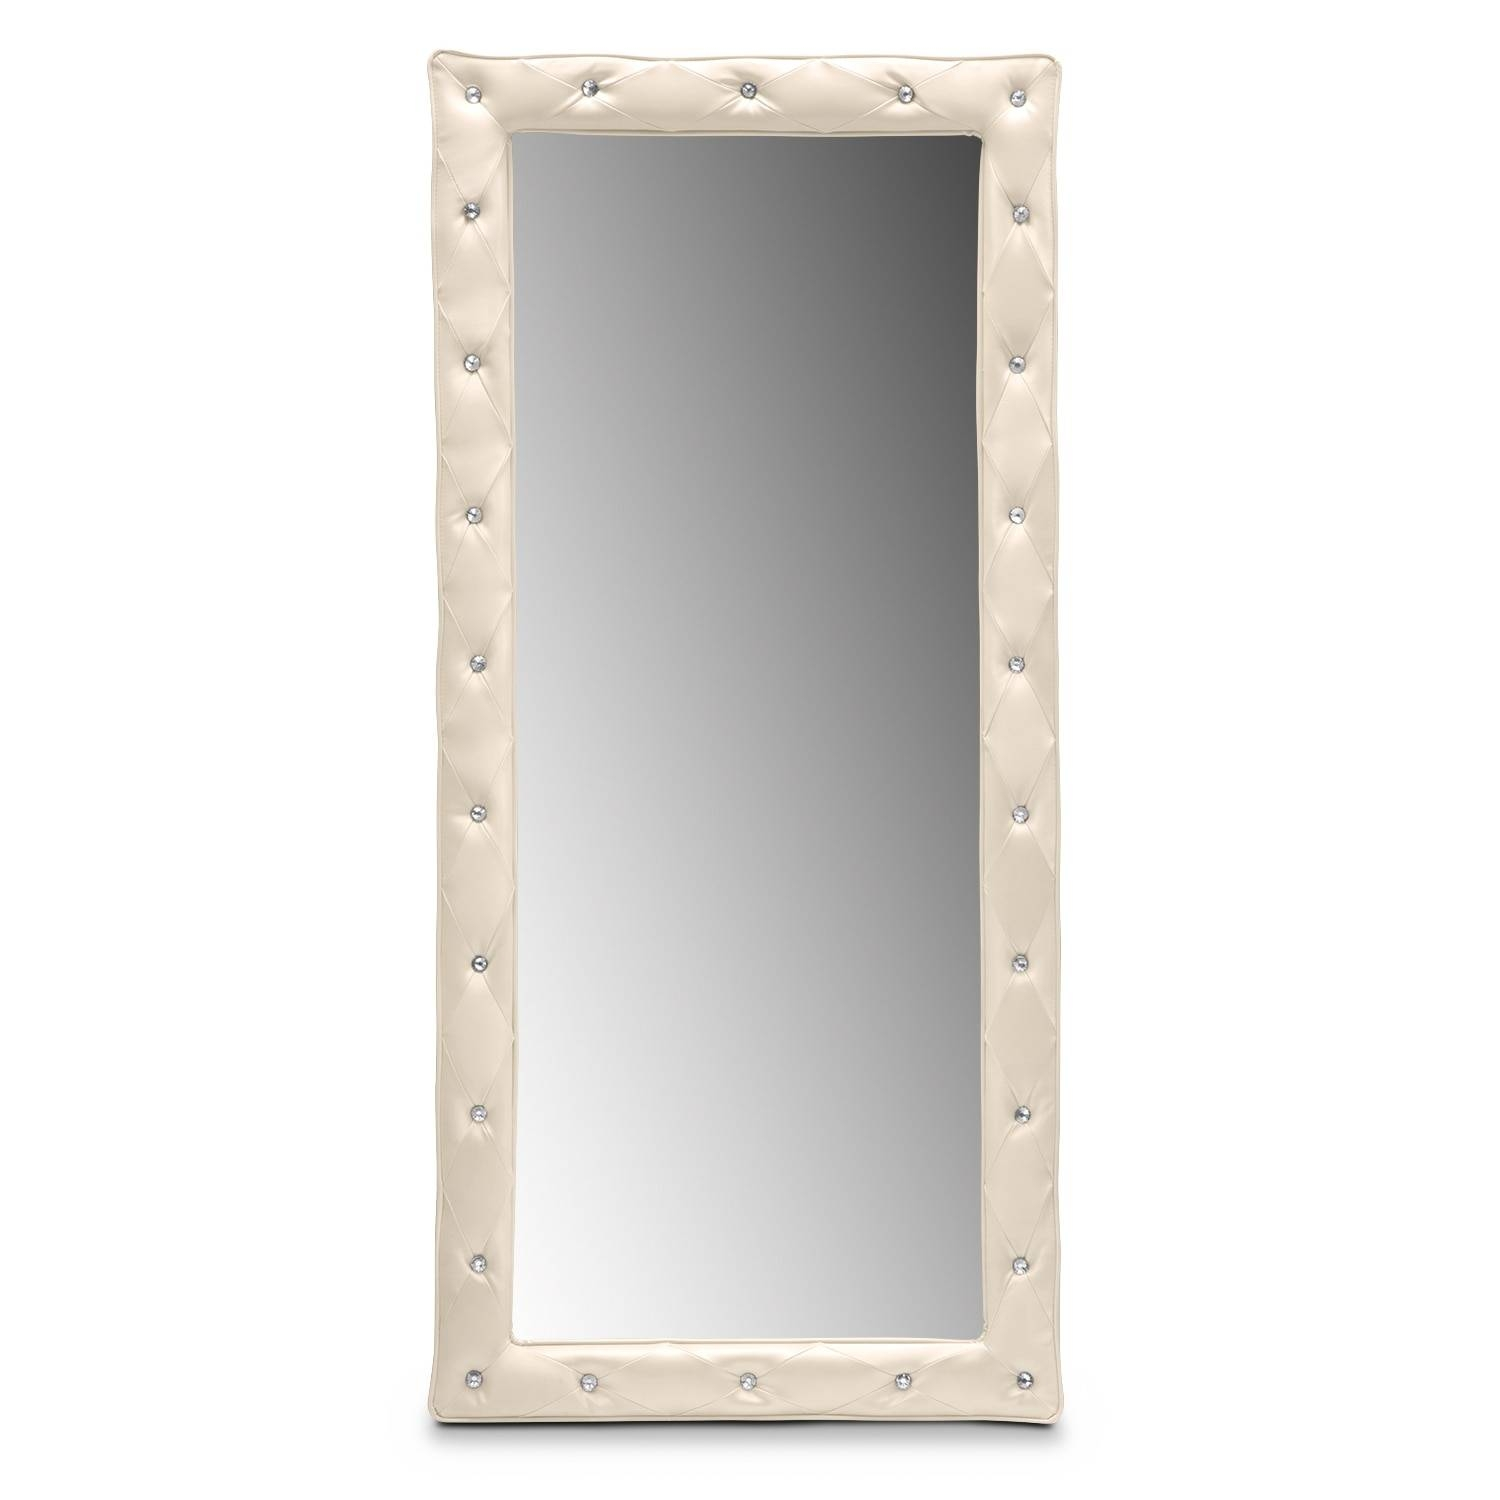 Wall & Floor Mirrors | Bedroom Accents | Value City Furniture And with regard to Bling Floor Mirrors (Image 15 of 15)